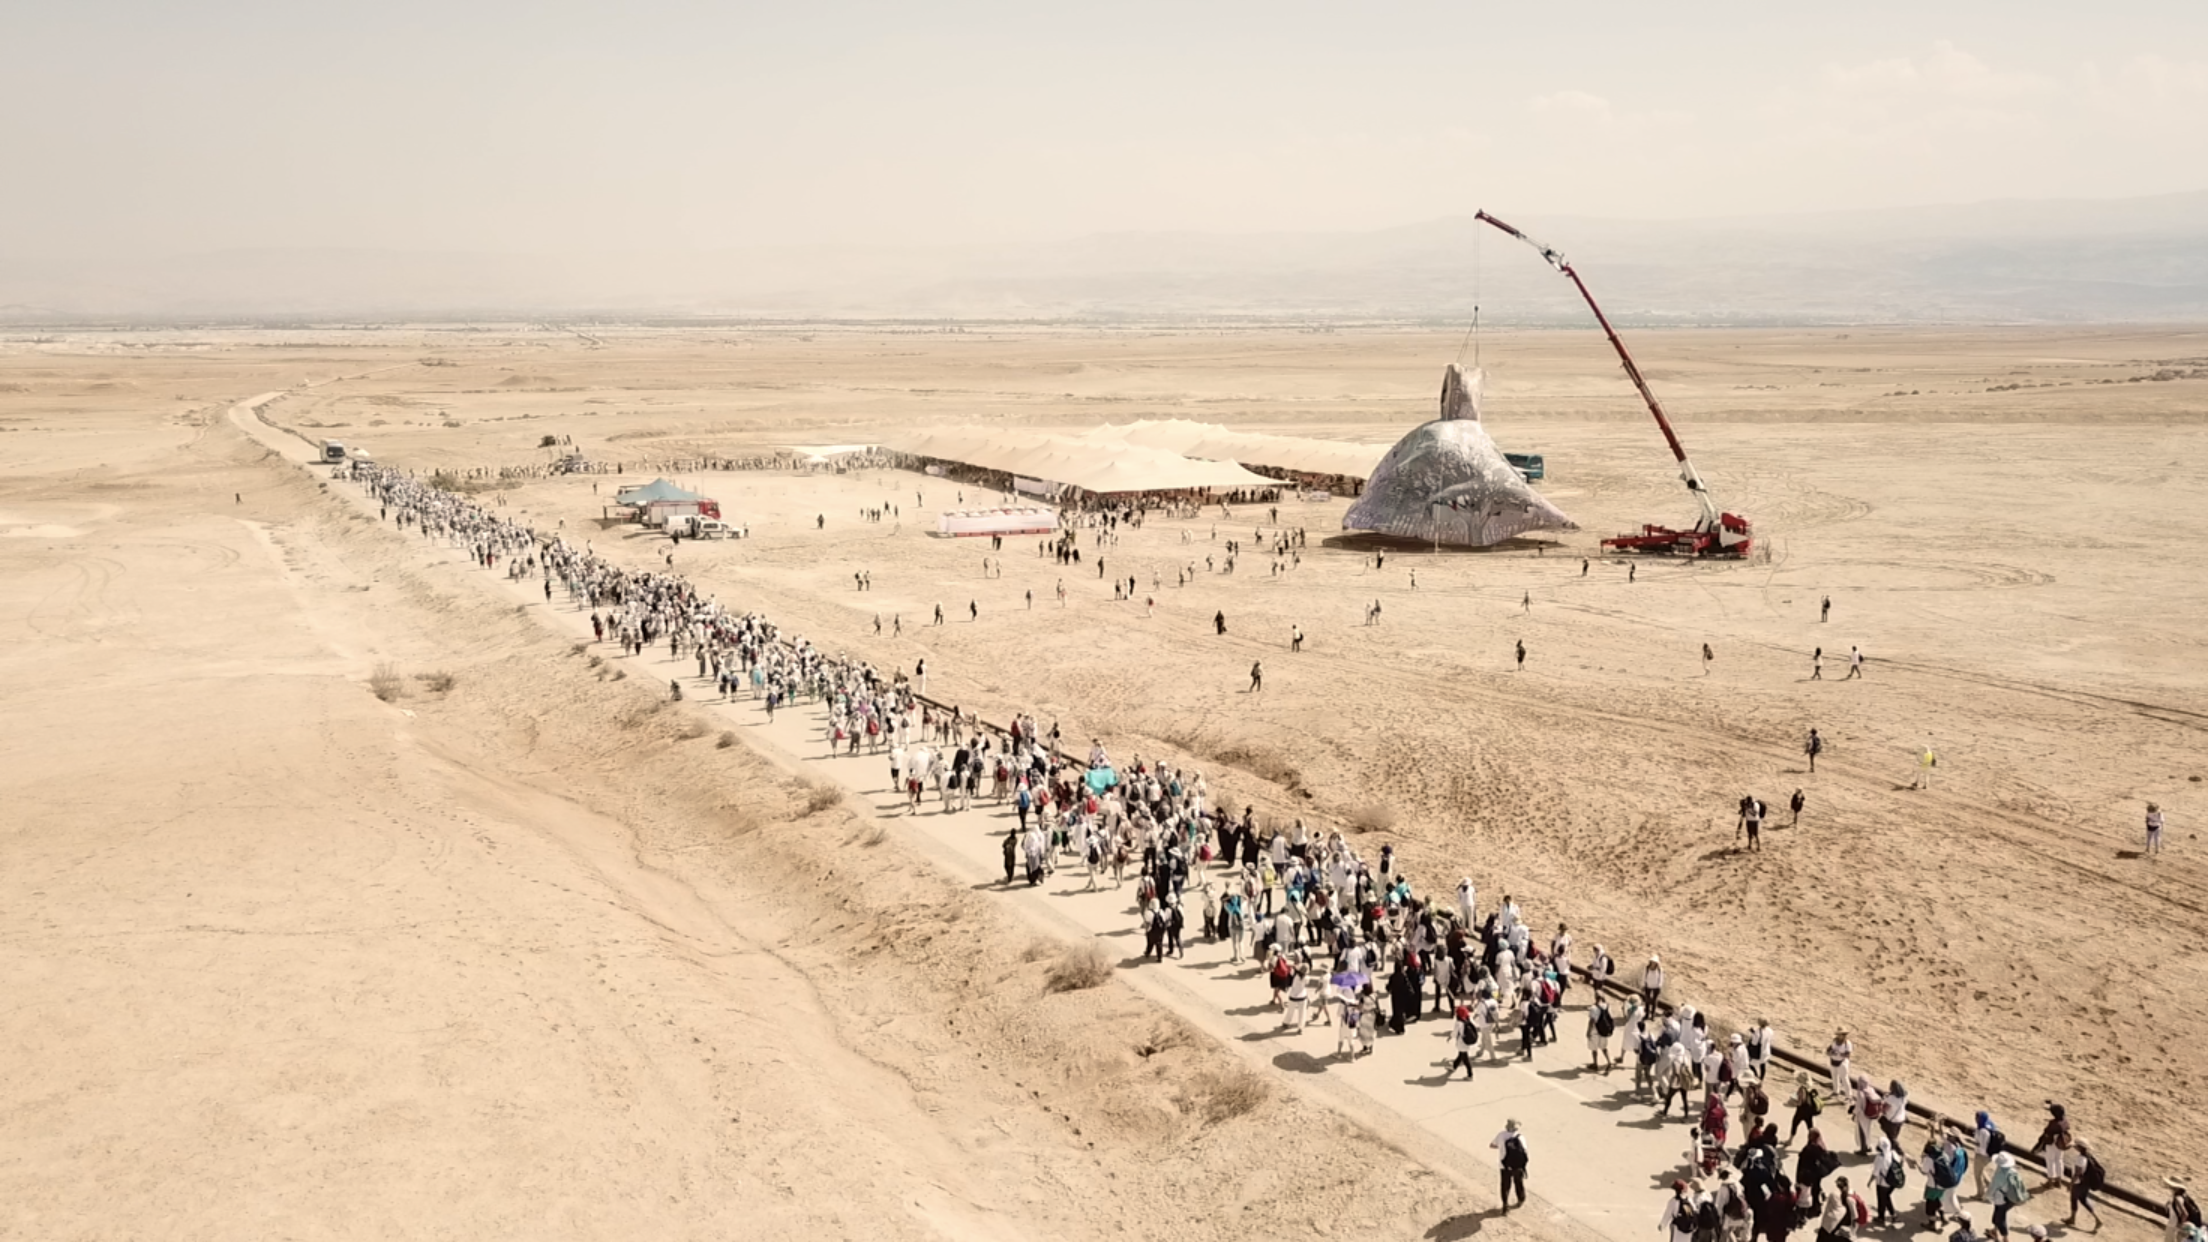 10,000 Palestinian and Israeli women marching for peace at the Dead Sea, October 2017. Drone photo:Aviad Bar